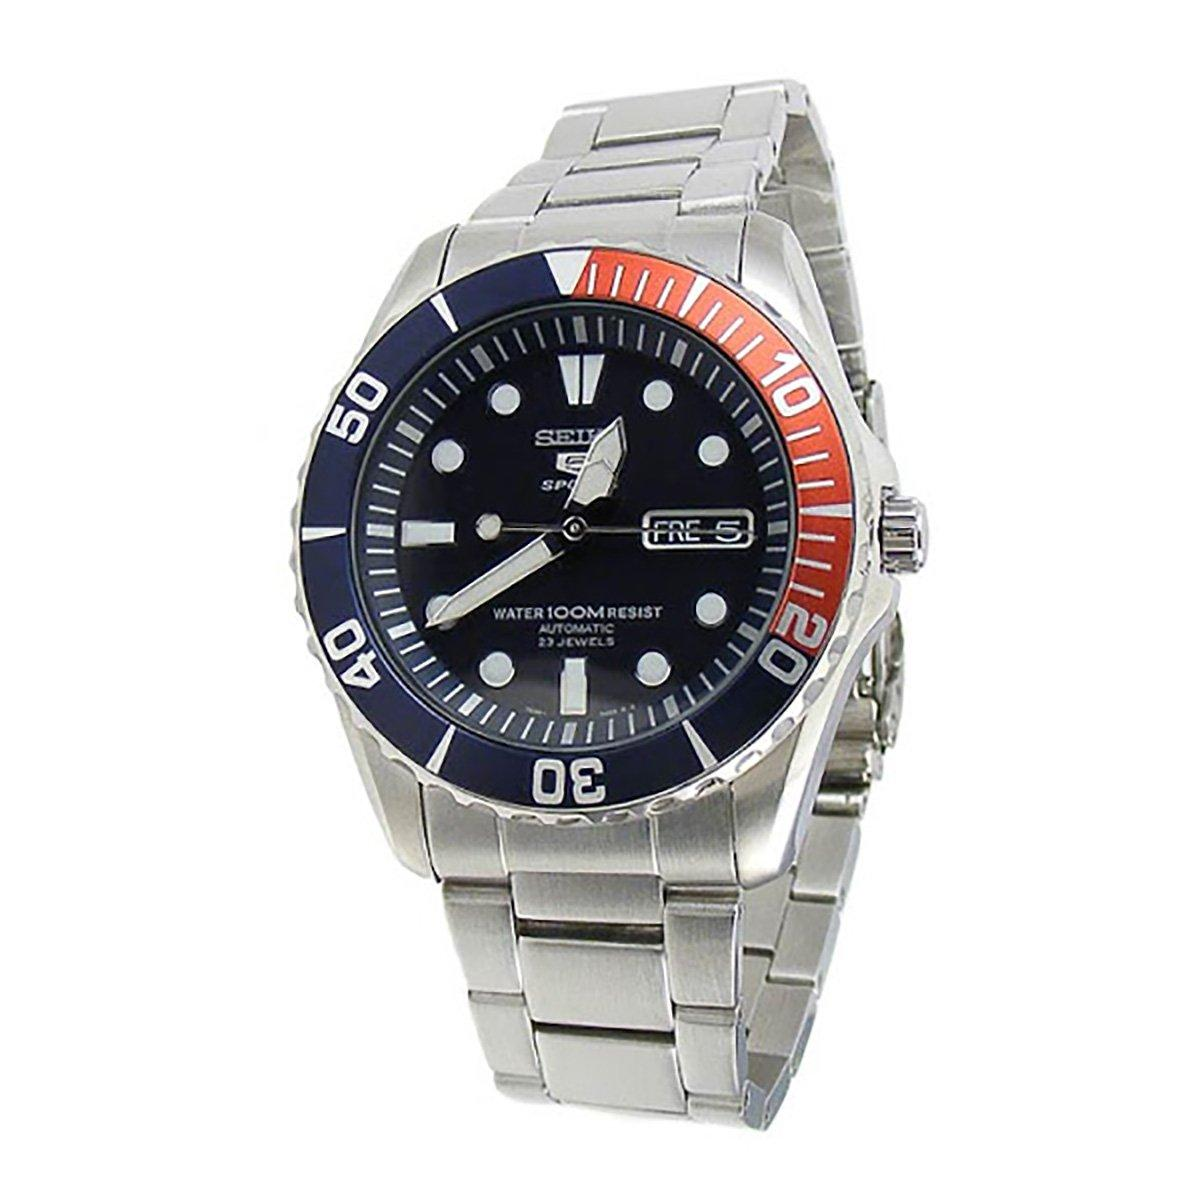 Discount Seiko Seiko 5 Sports Silver Stainless Steel Case Stainless Steel Bracelet Mens Snzf15K1 Seiko Singapore